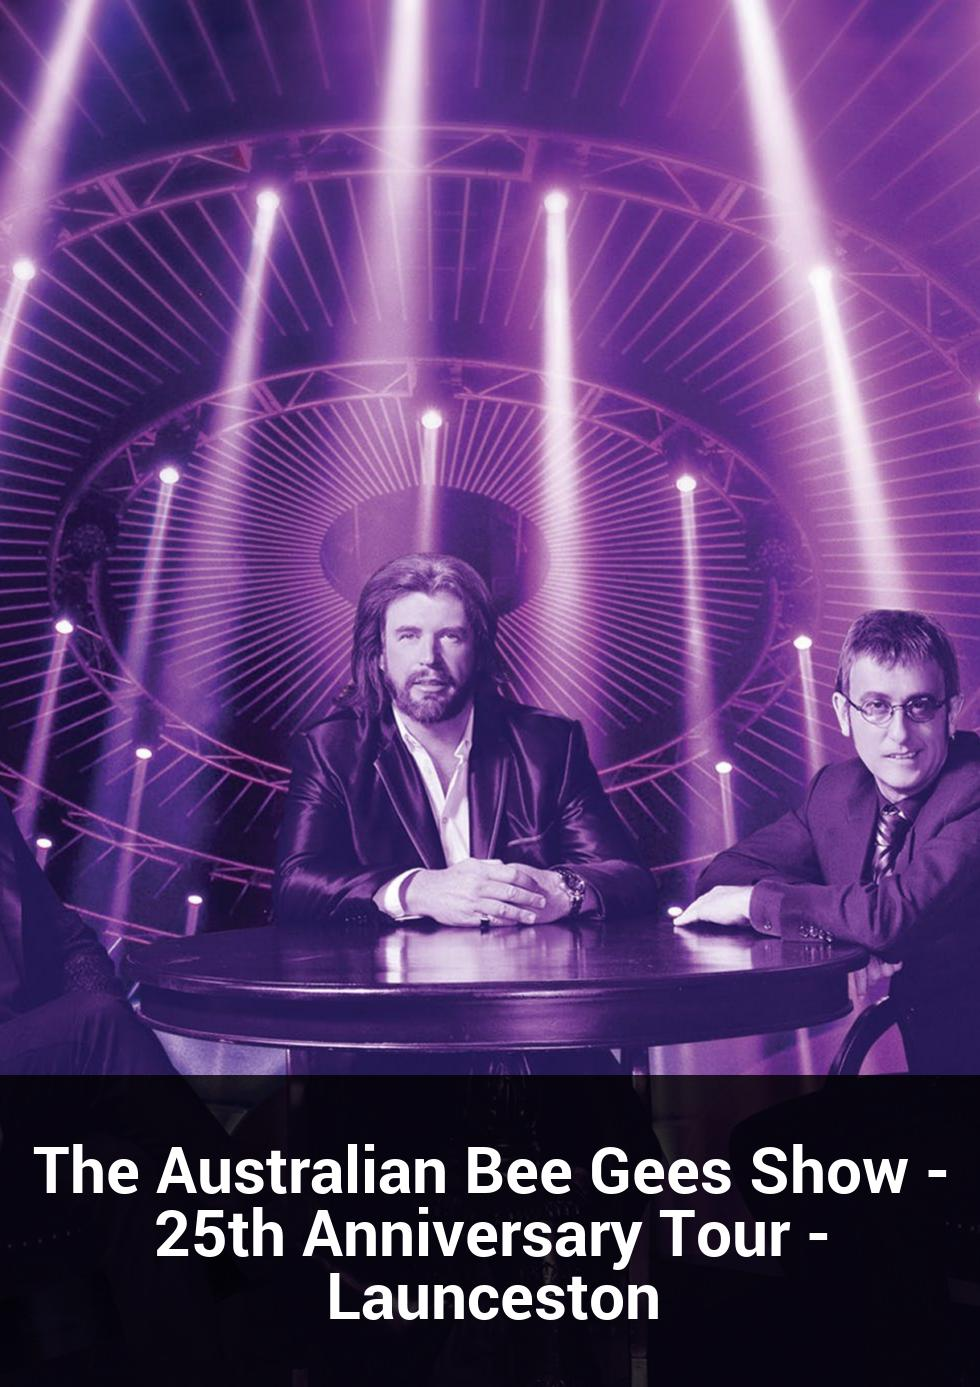 The Australian Bee Gees Show - 25th Anniversary Tour - Launceston at Launceston Country Club